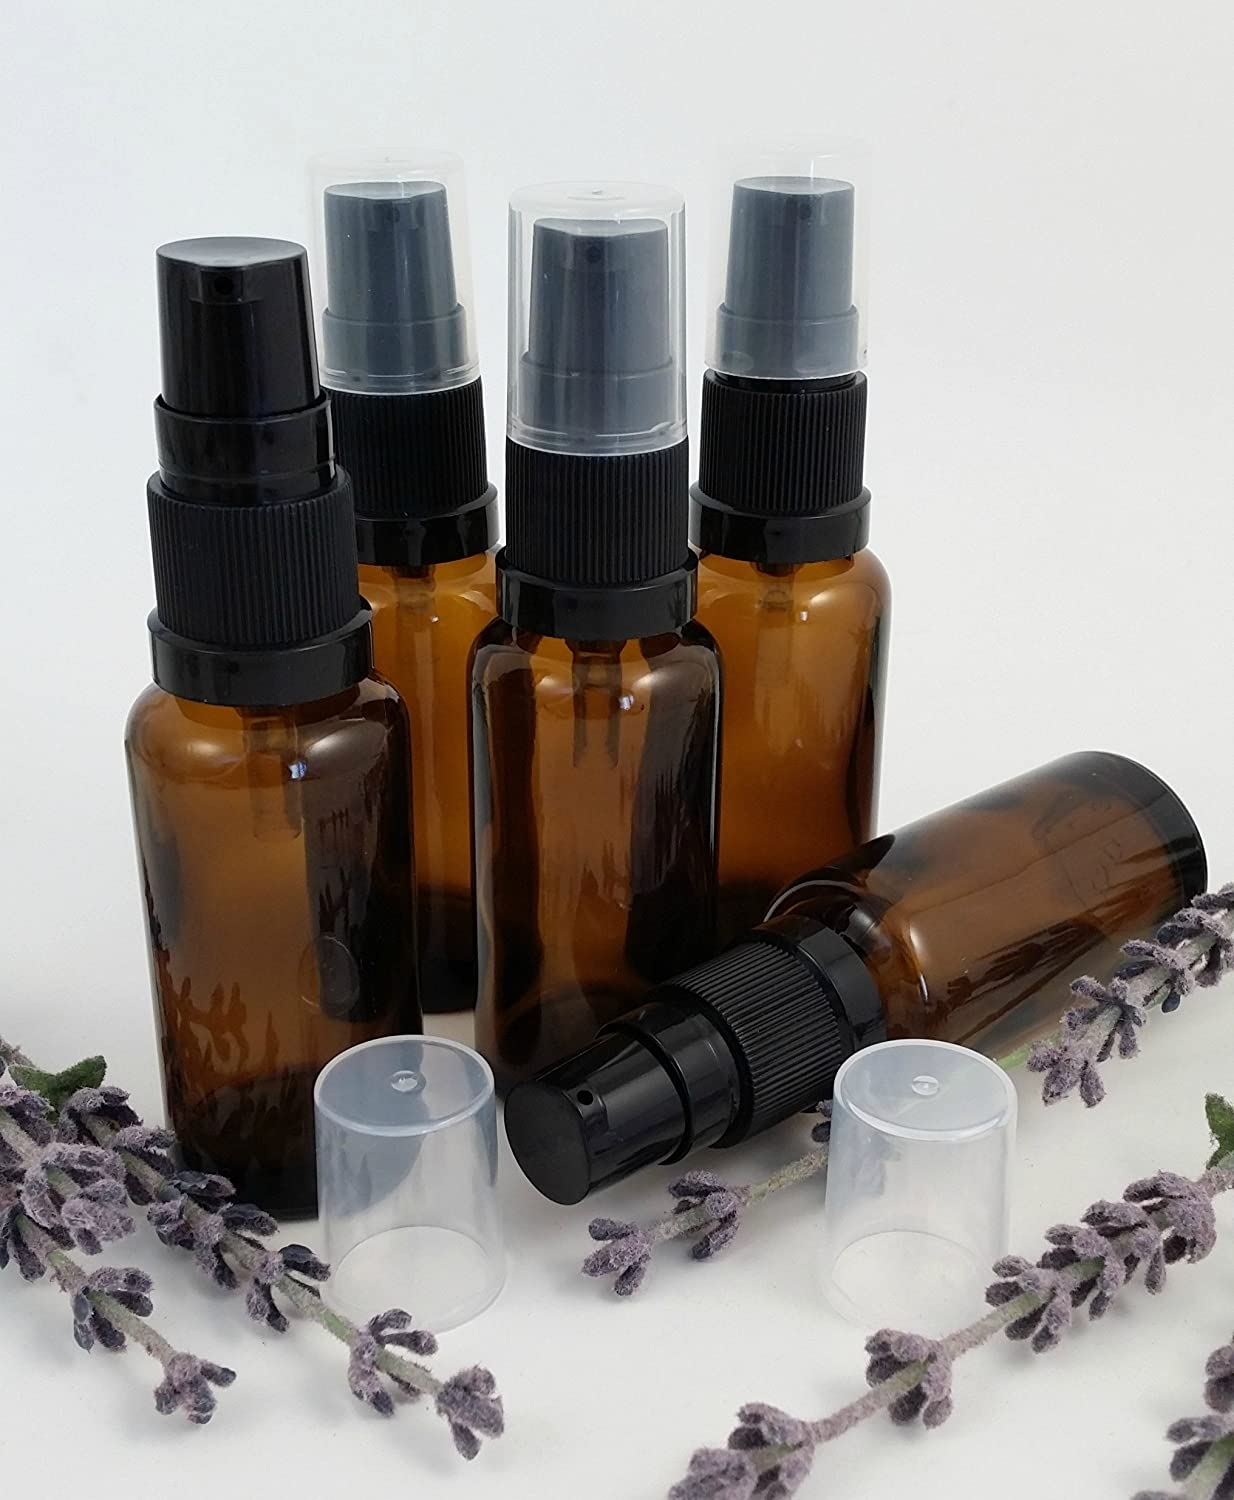 5 x AMBER Glass Aromatherapy Bottle with BLACK treatment pump/lotion pump. Choose Size: 10ml, 20ml, 25ml, 30ml, 50ml and 100ml Aromatherapy Bottle. Top quality empty AMBER glass bottle suitable for Aromatherapy, Art, Crafts, First Aid, Travel Size Bottle